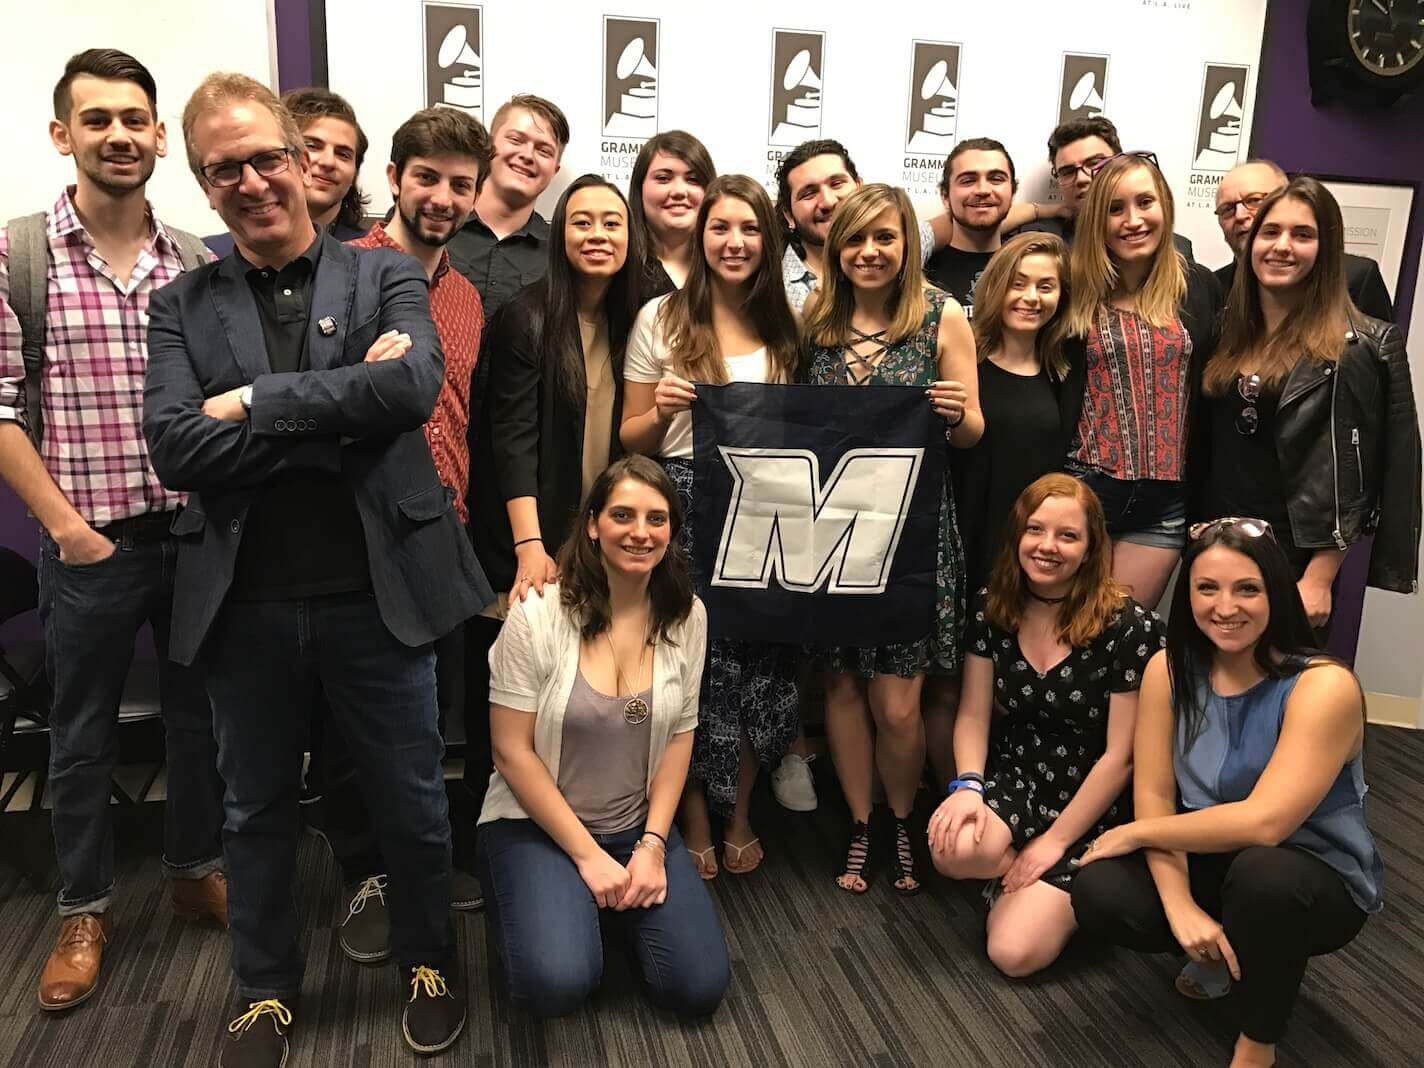 Students and faculty from the university's Music, Communications, and Business programs, standing together for a group photo in the Grammy Museum at L.A. Live